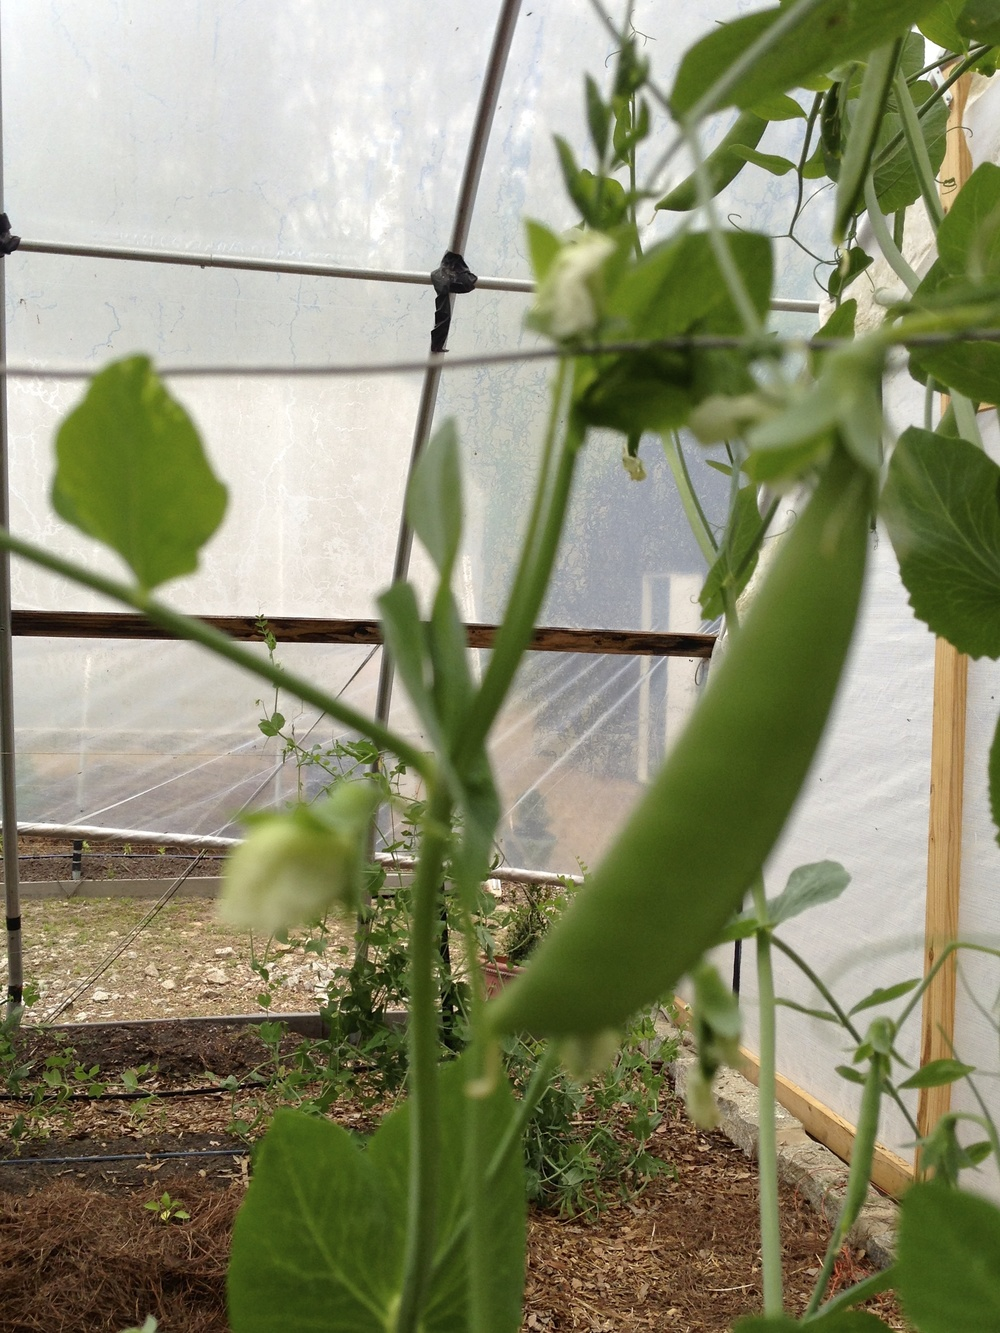 Sugar Snap Peas bloom and produce plentifully.  They were started early in the warmer environment of one of the hoophouses.